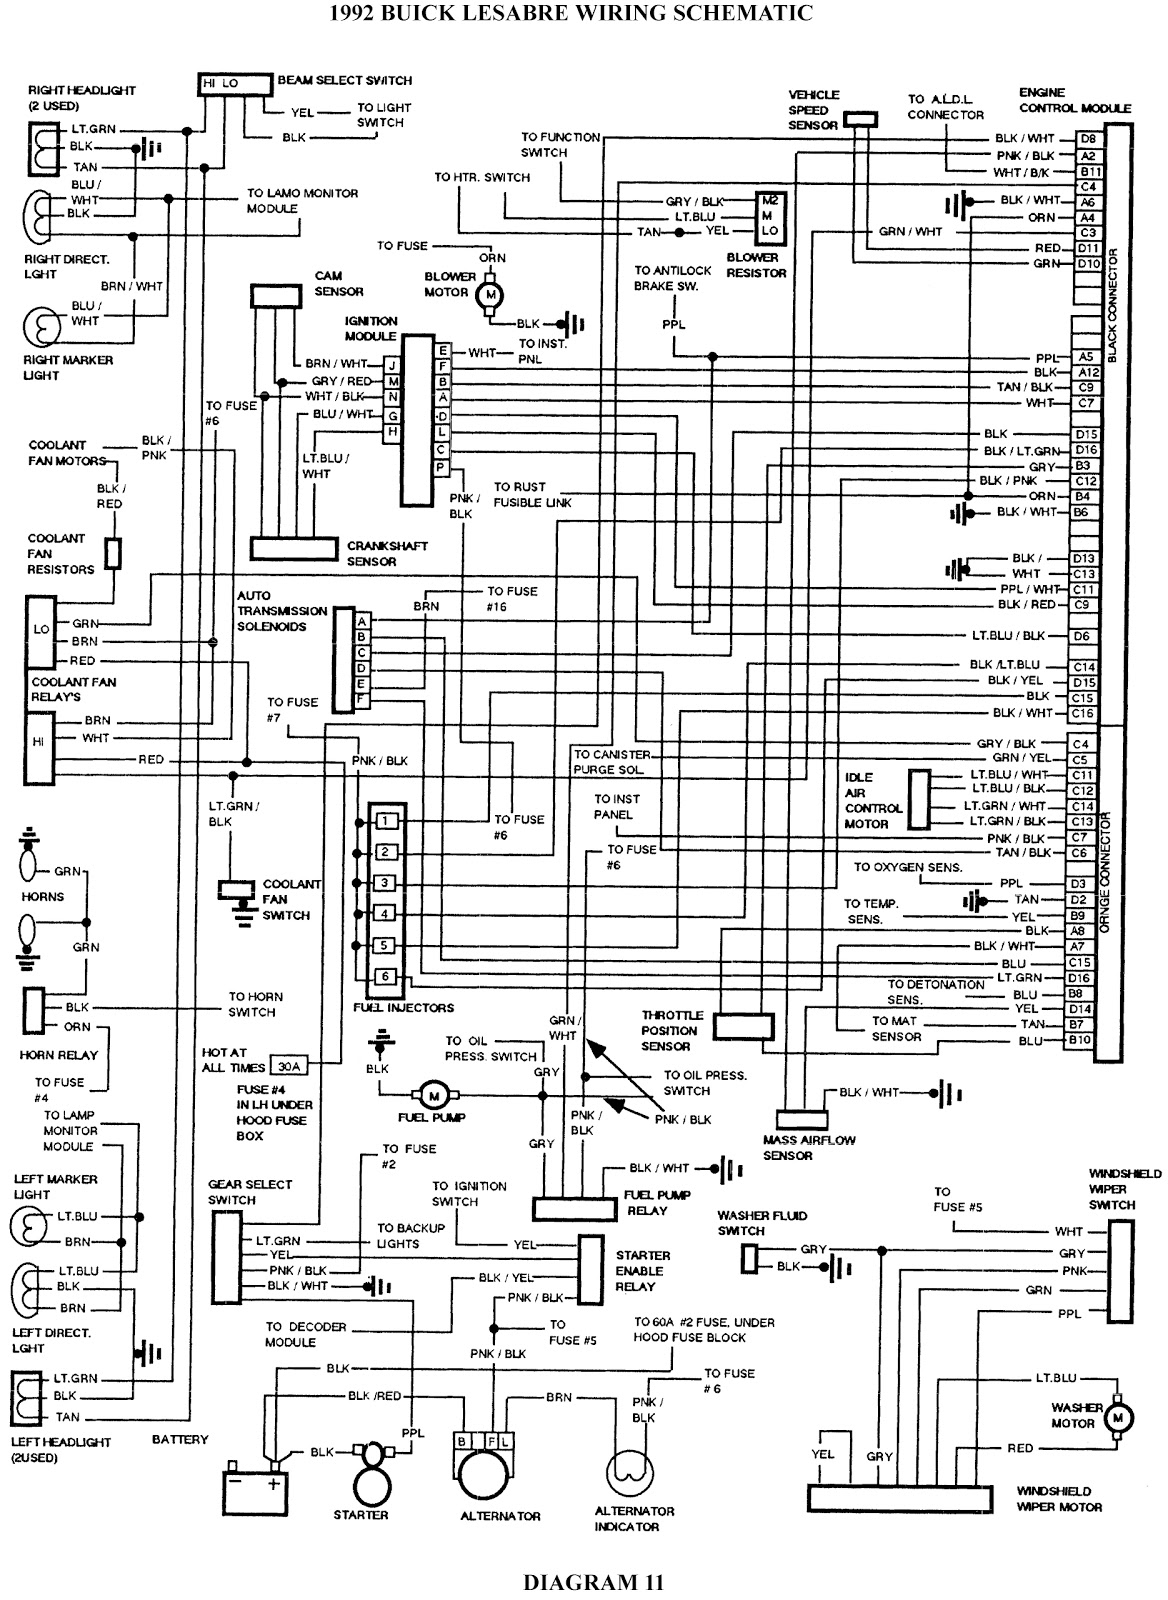 1996 buick wiring diagram wiring diagram schemafuse box 96 buick regal wiring diagram 1996 buick regal radio wiring diagram 1996 buick wiring diagram